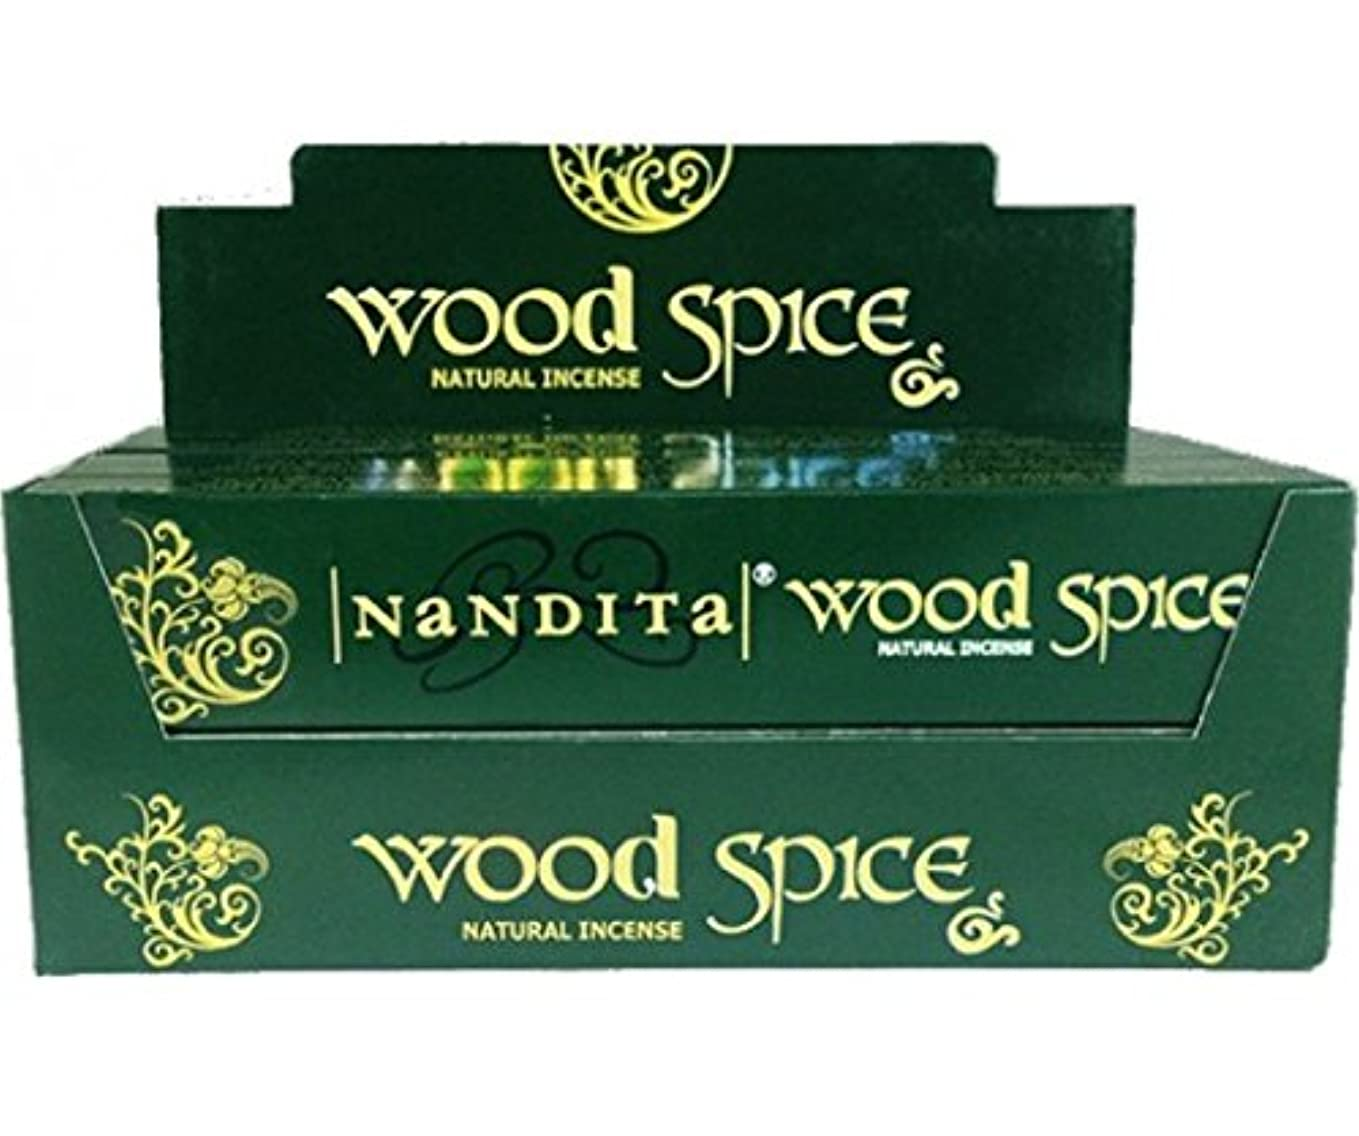 悪性腫瘍師匠正規化Nandita Wood Spice Incense Sticks 12 x 15 gms Agarbathi